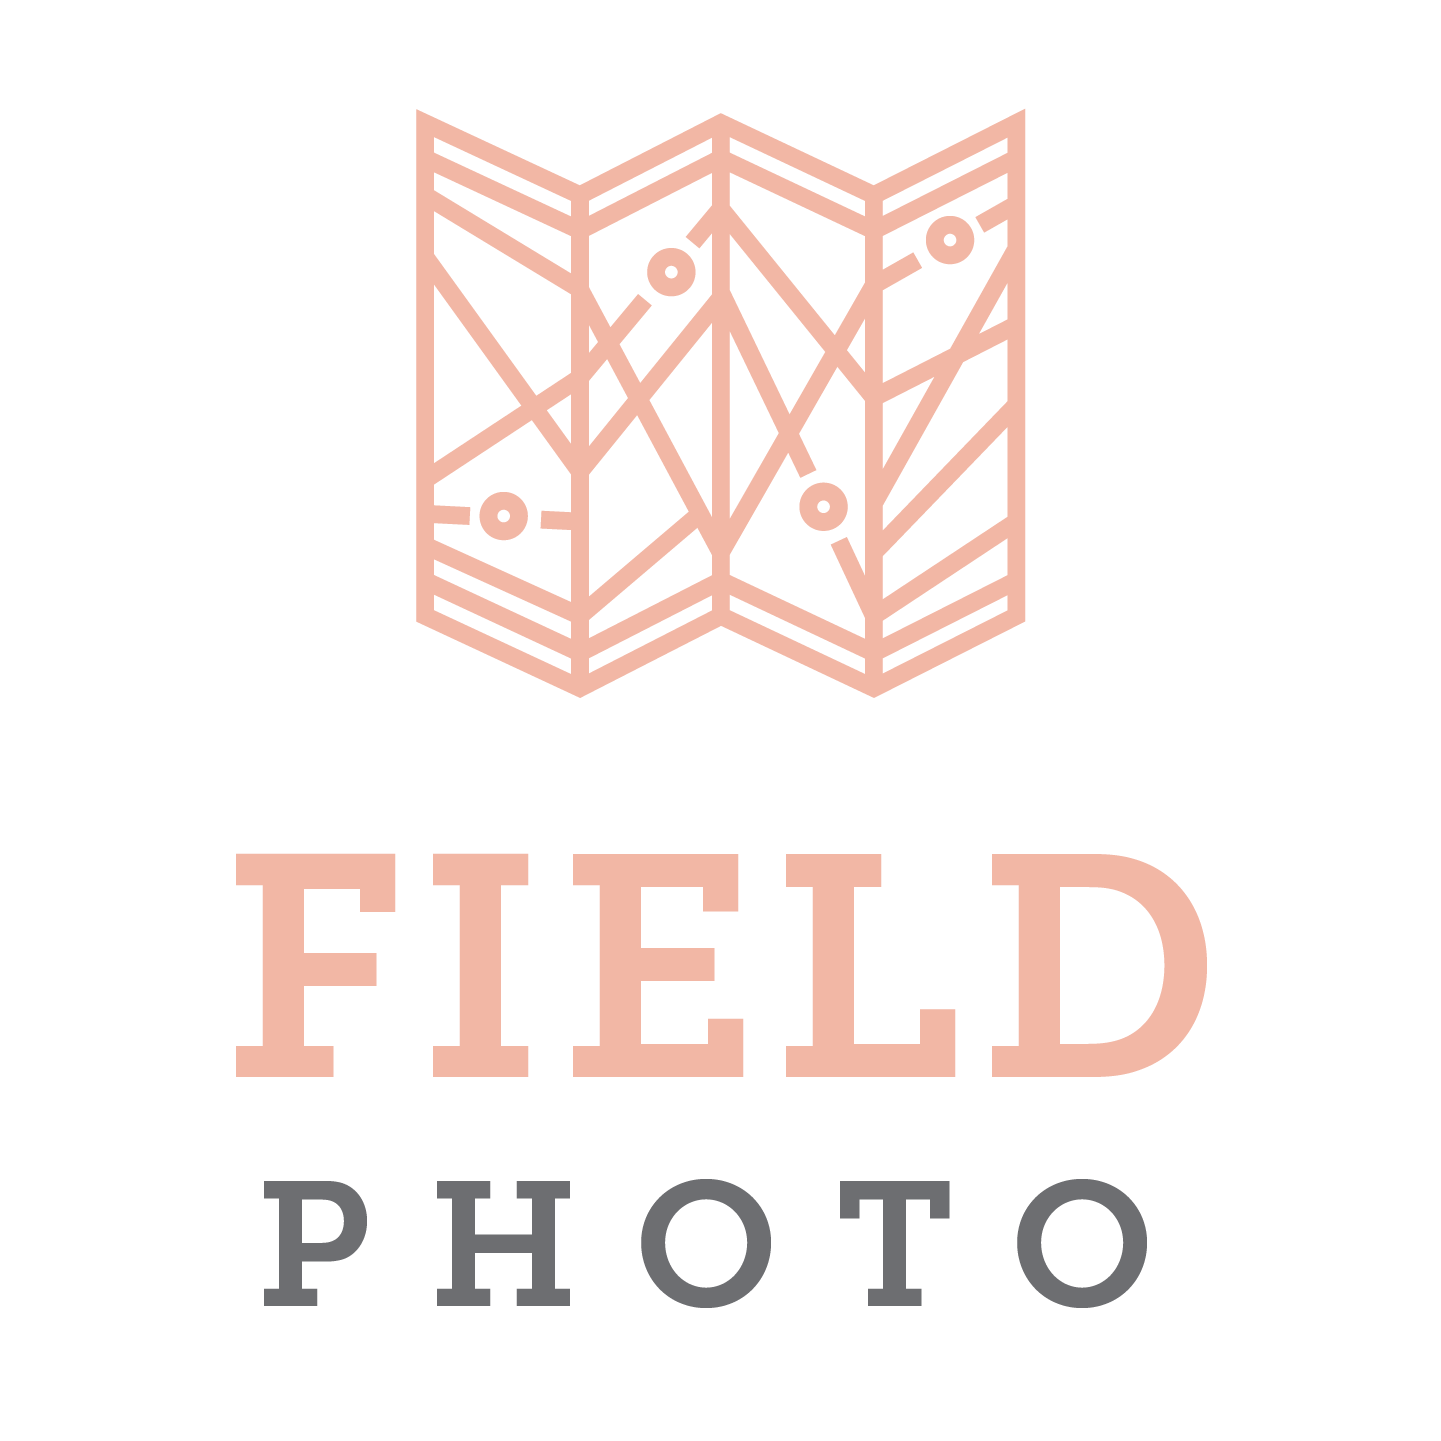 Louisville Wedding, Portrait Photography - Field Photo